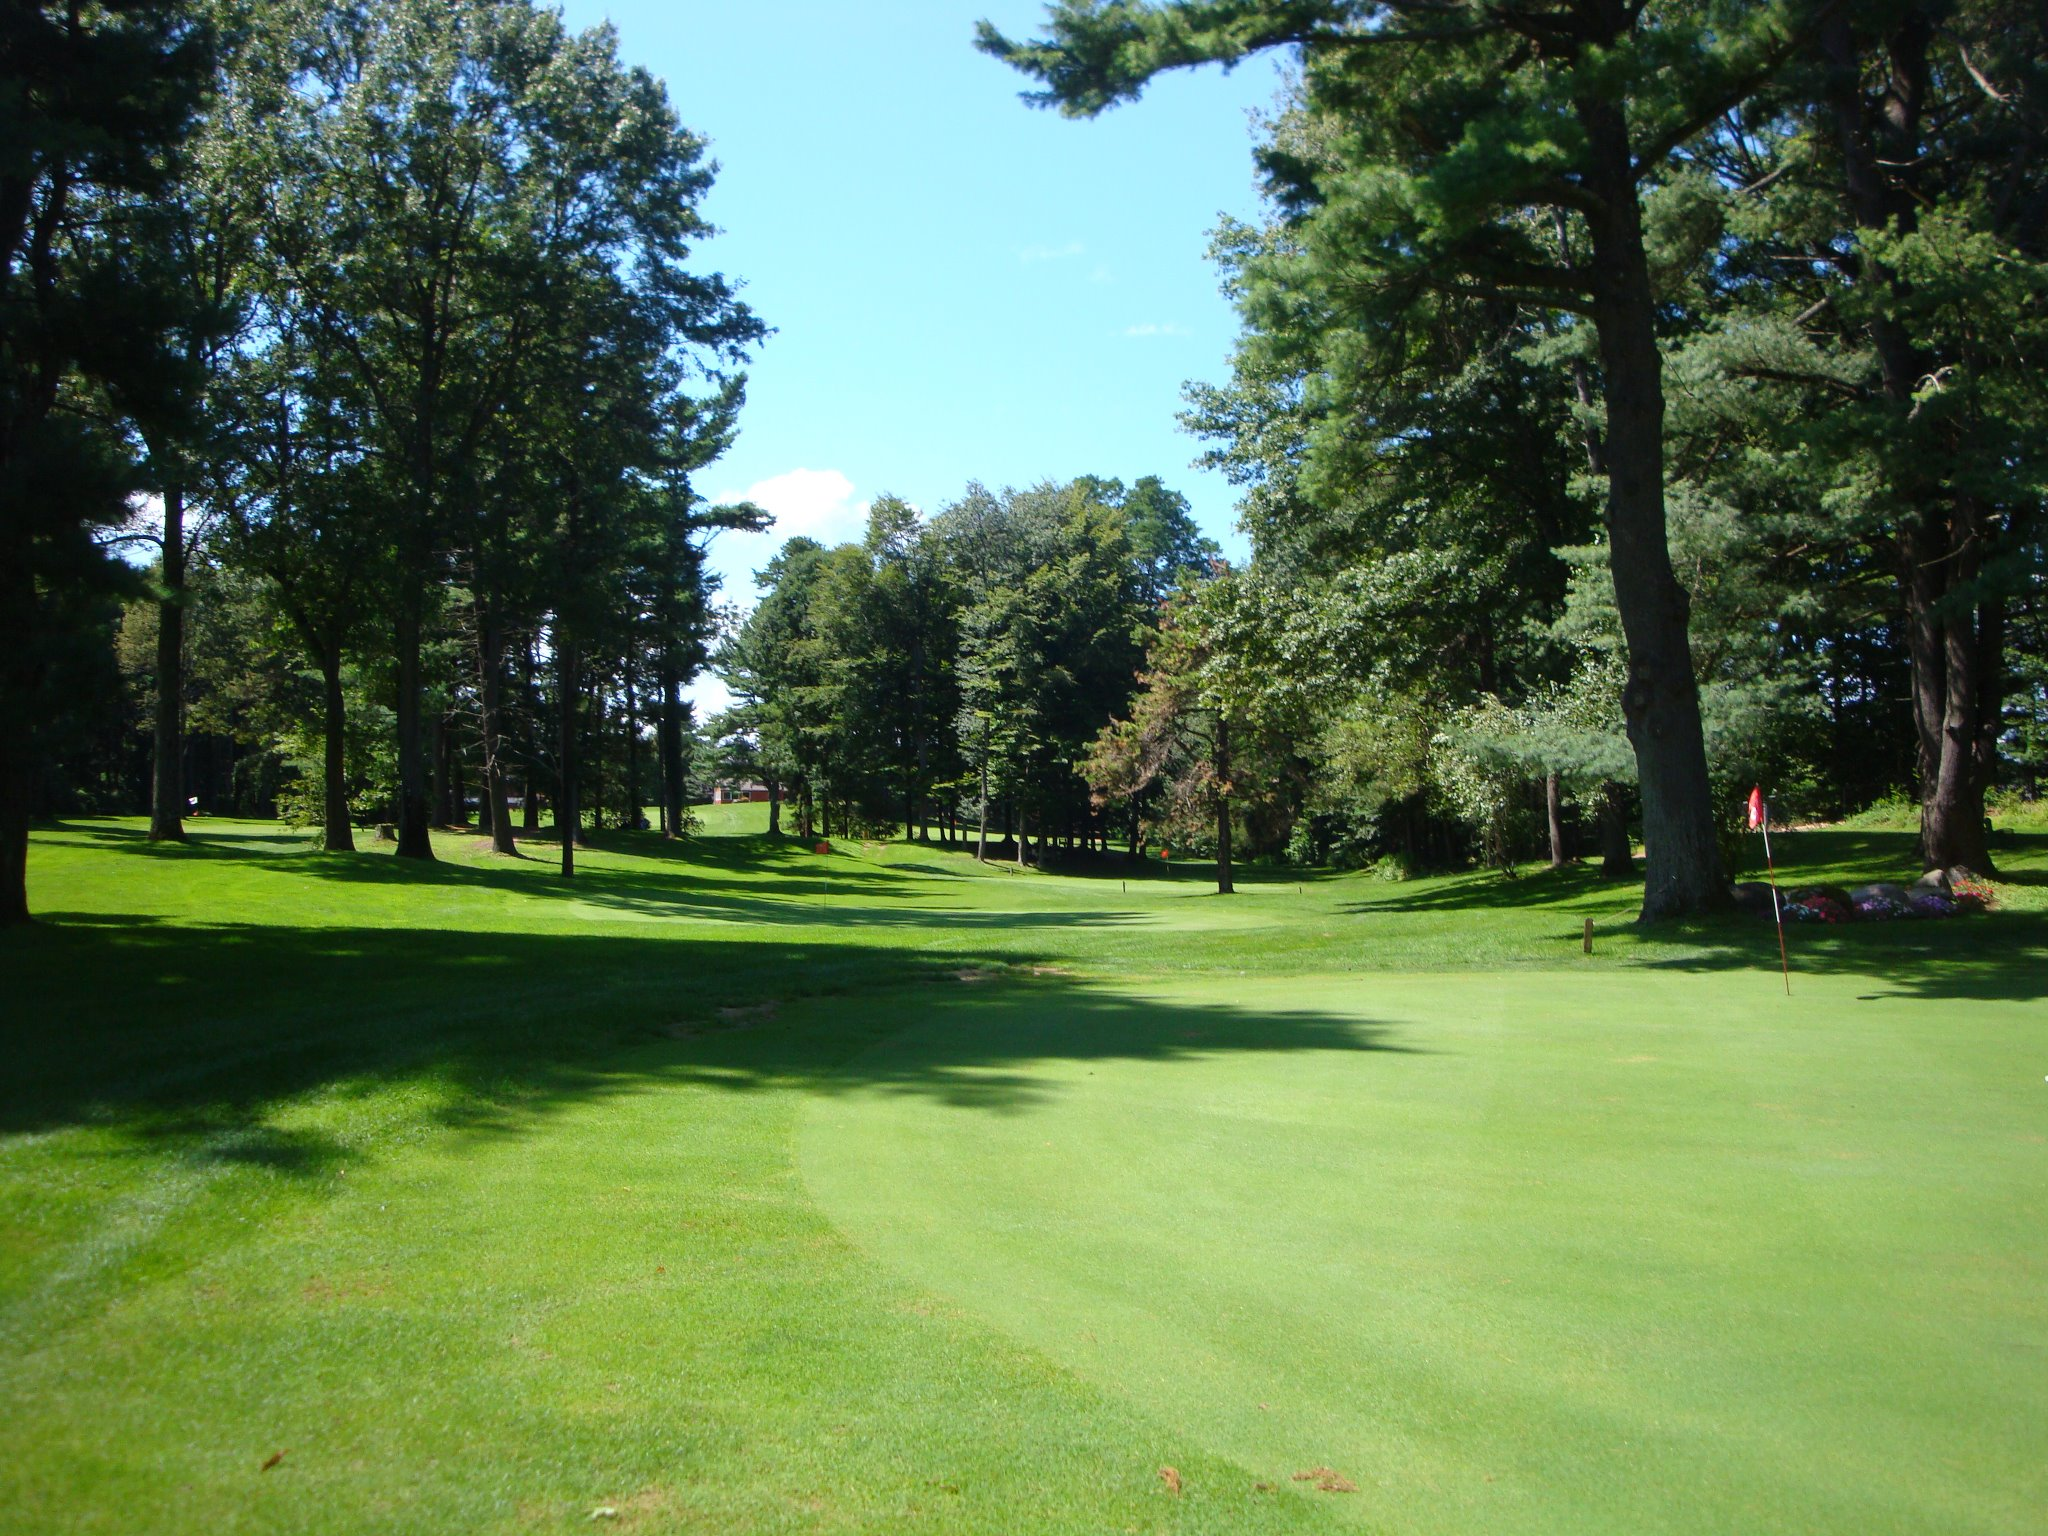 golf course showing green grass and tall pine trees